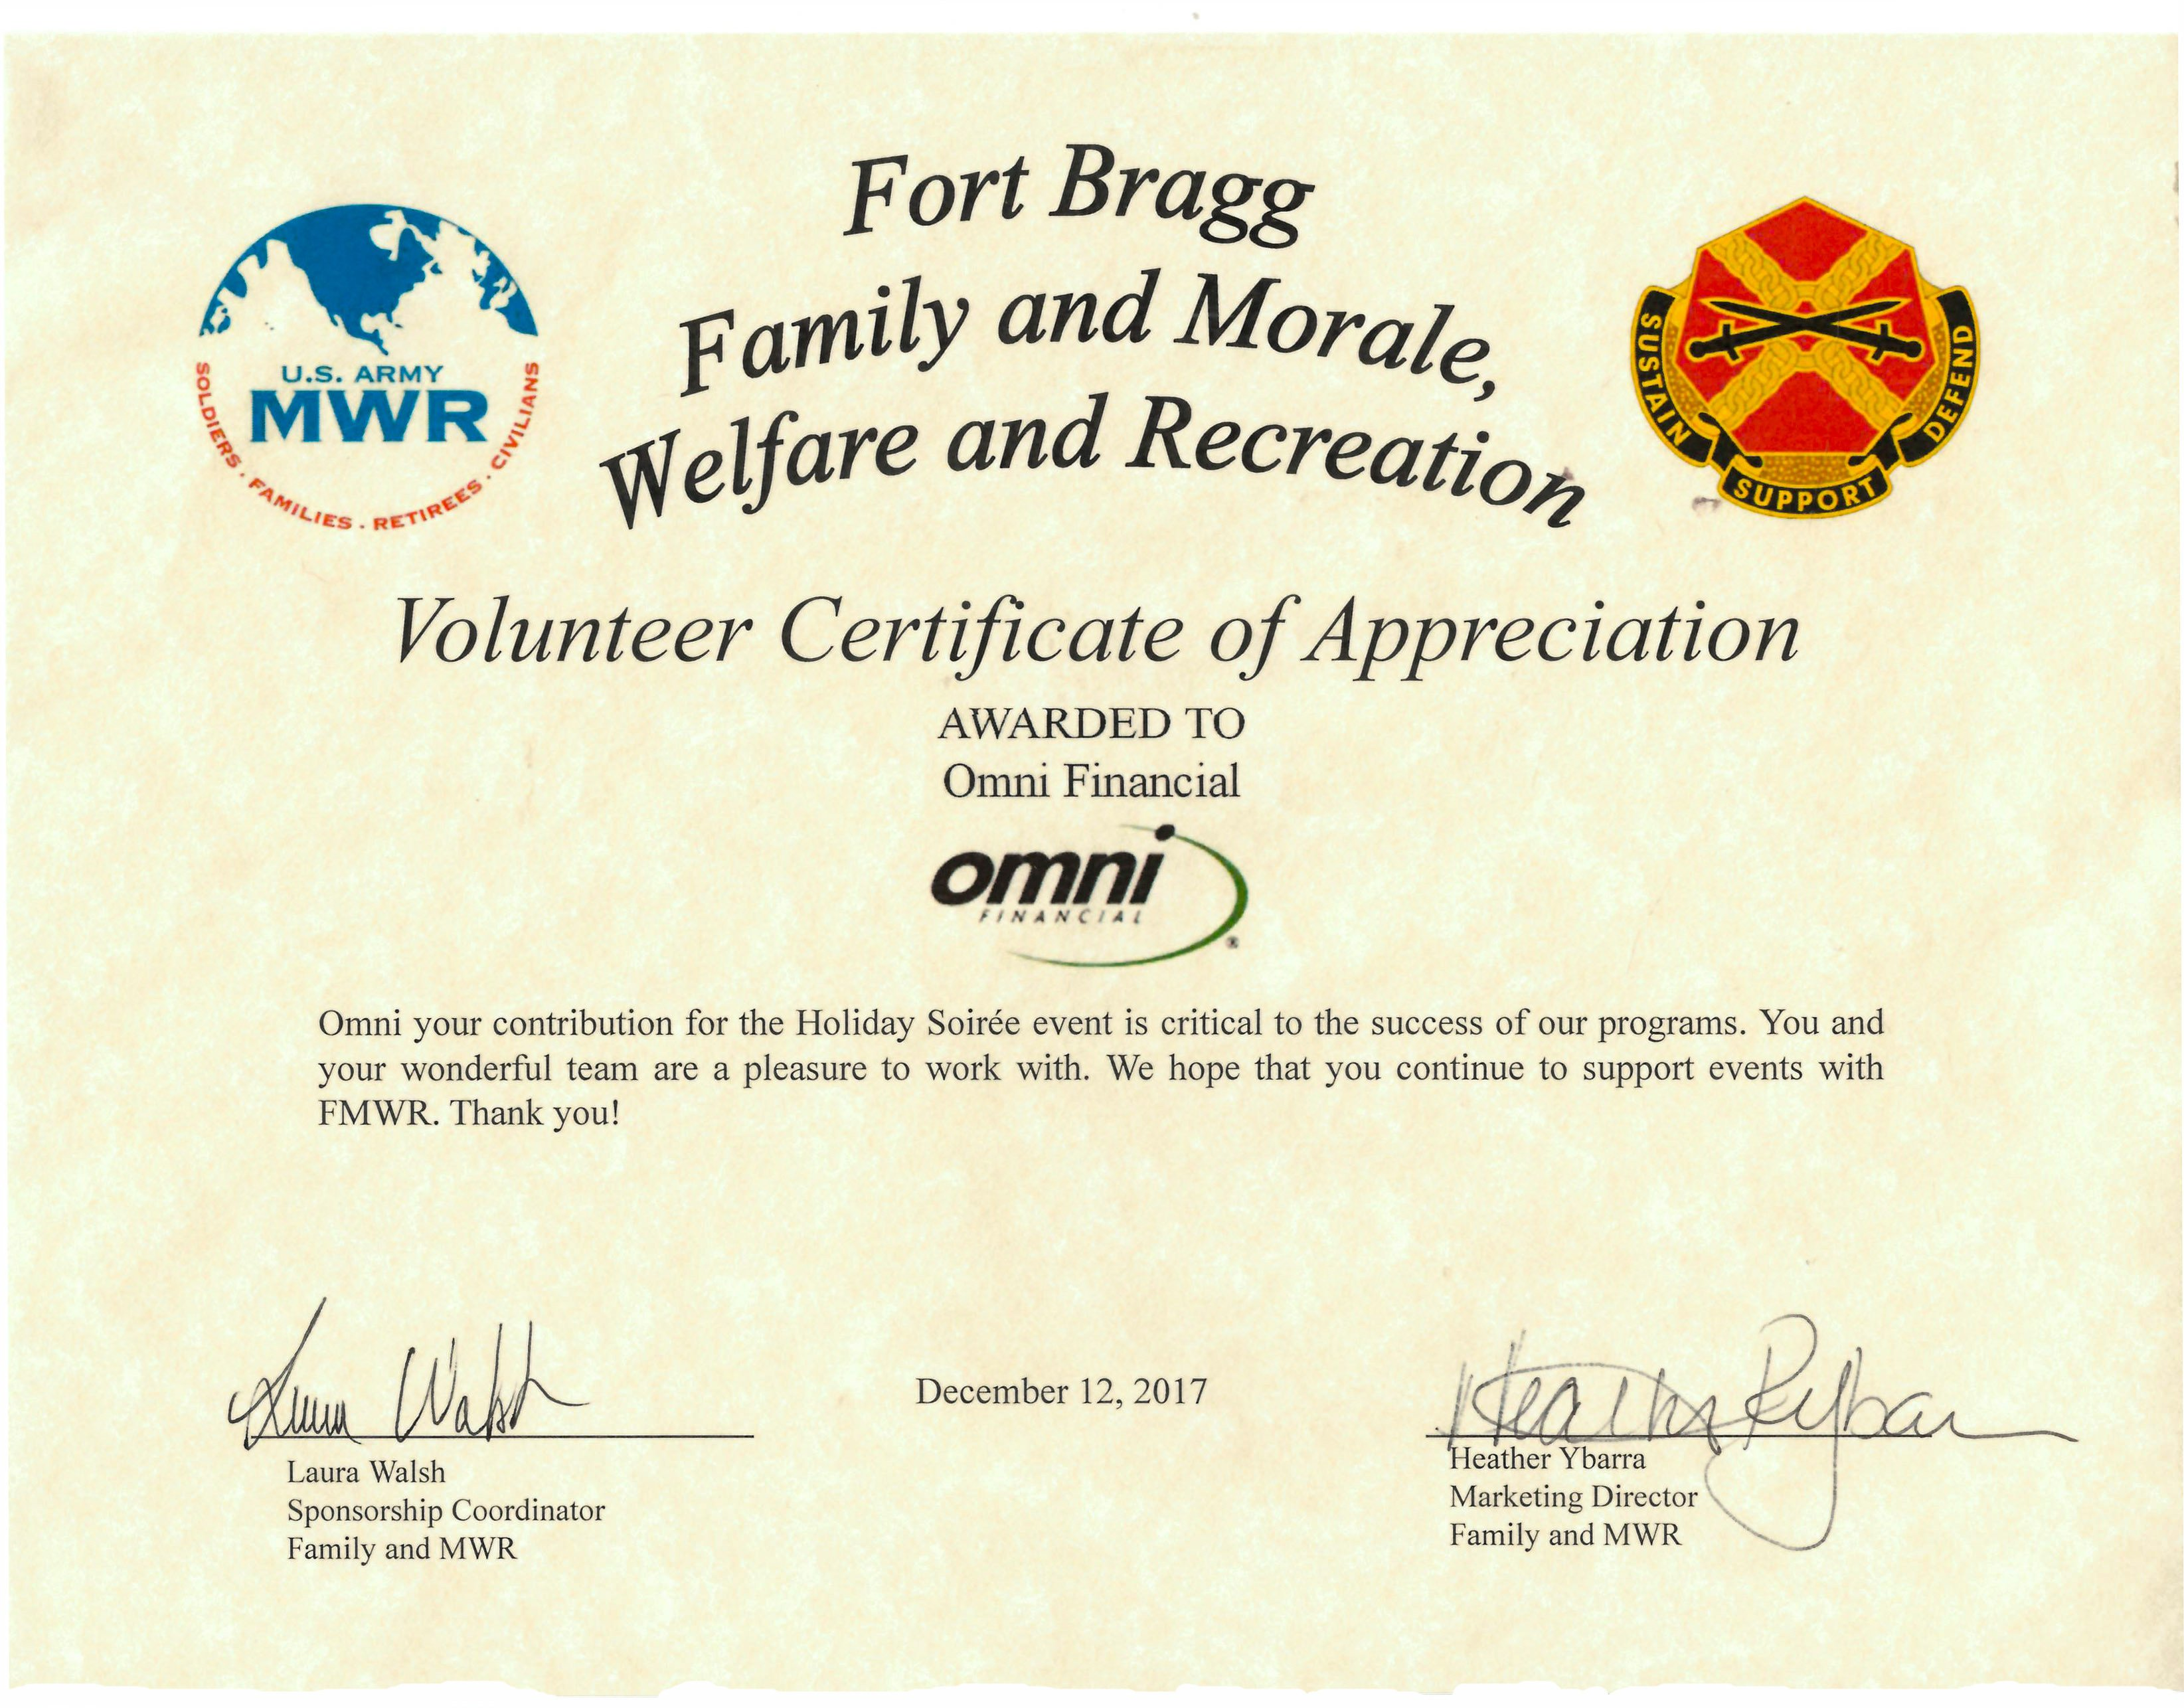 Volunteer Certificate Of Appreciation Omni Military Loans In Fayetteville Nc